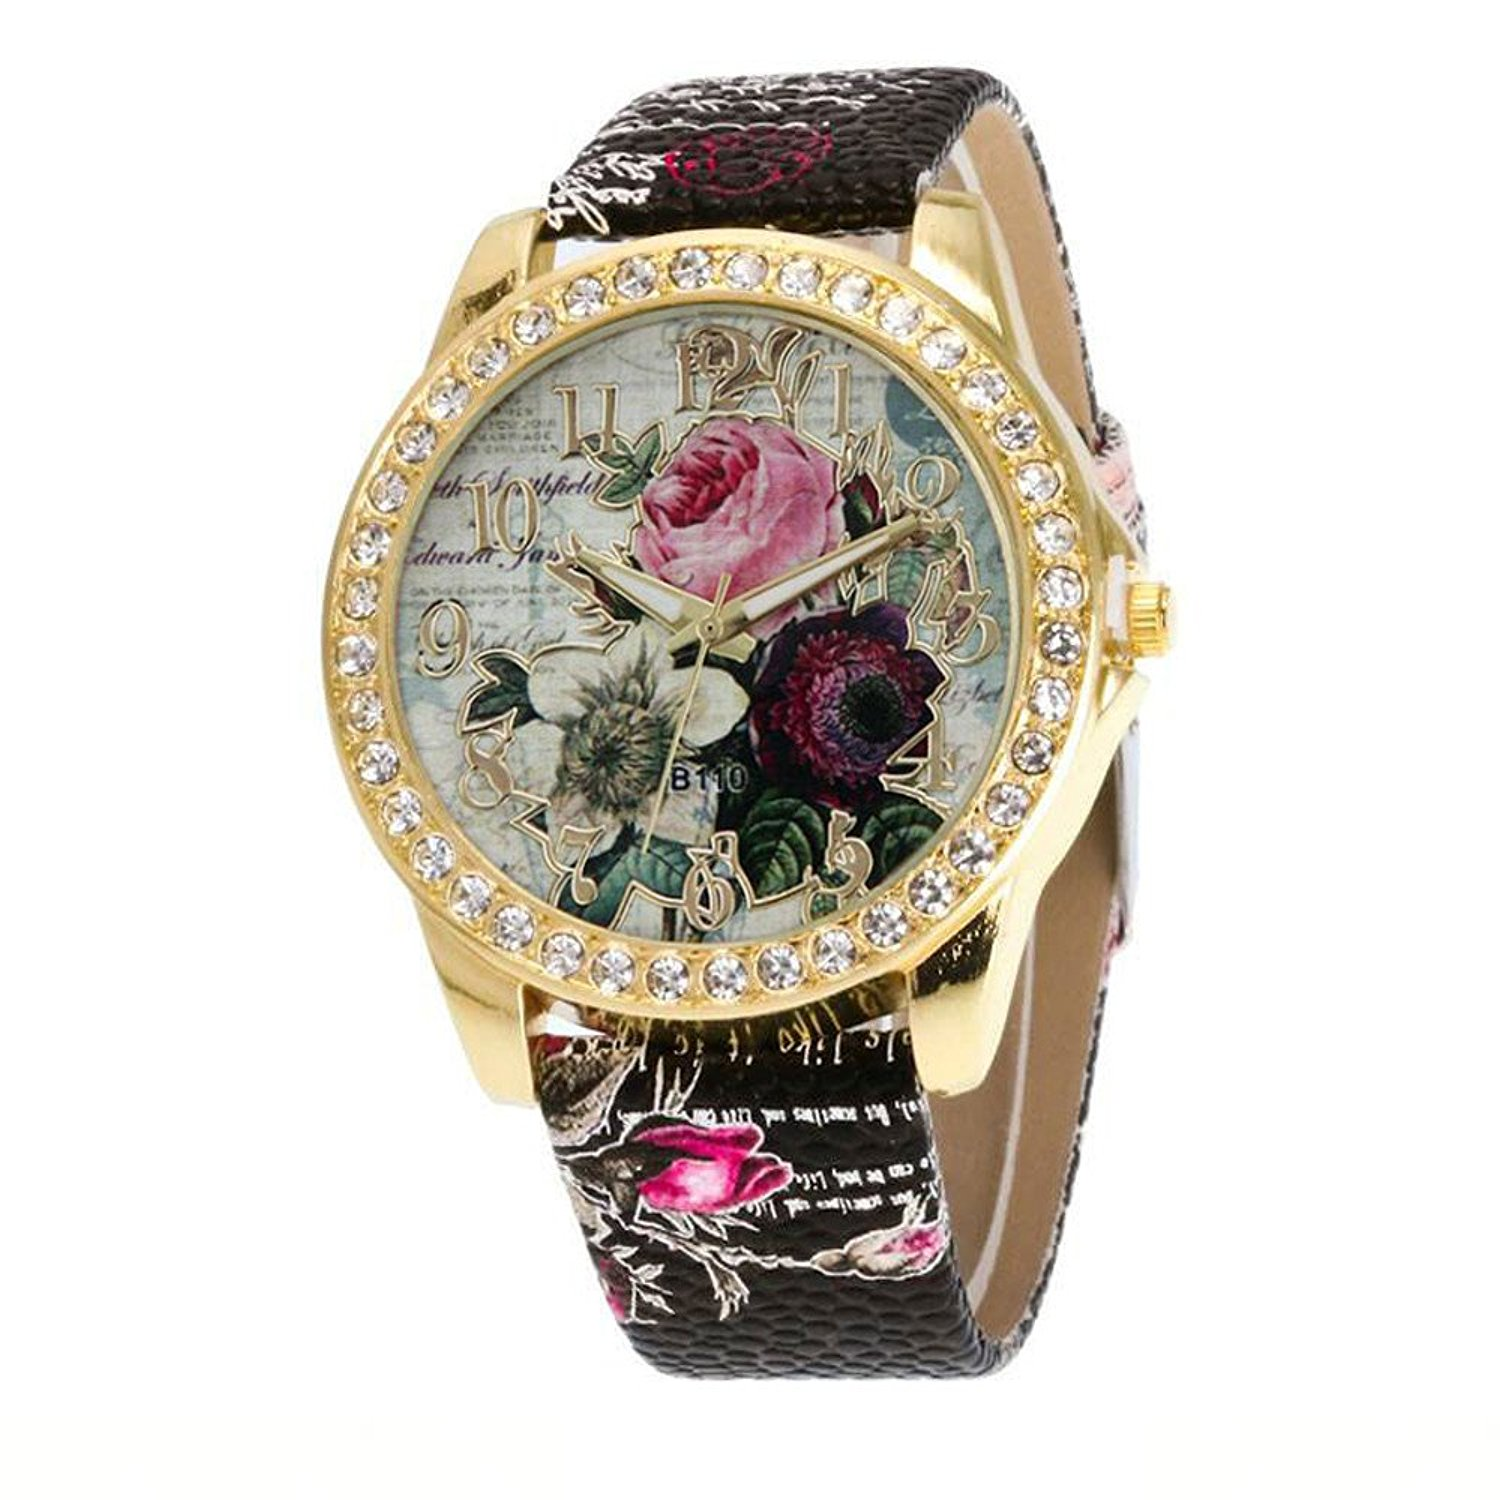 Women Quzrtz Watches On Sale,POTO Quartz Women Watches Rose Patter Luxury Casual Stainless Steel Alloy Round Case Wristwatch Womens Leather Analog Quartz Wrist Watches For Ladies Clearance